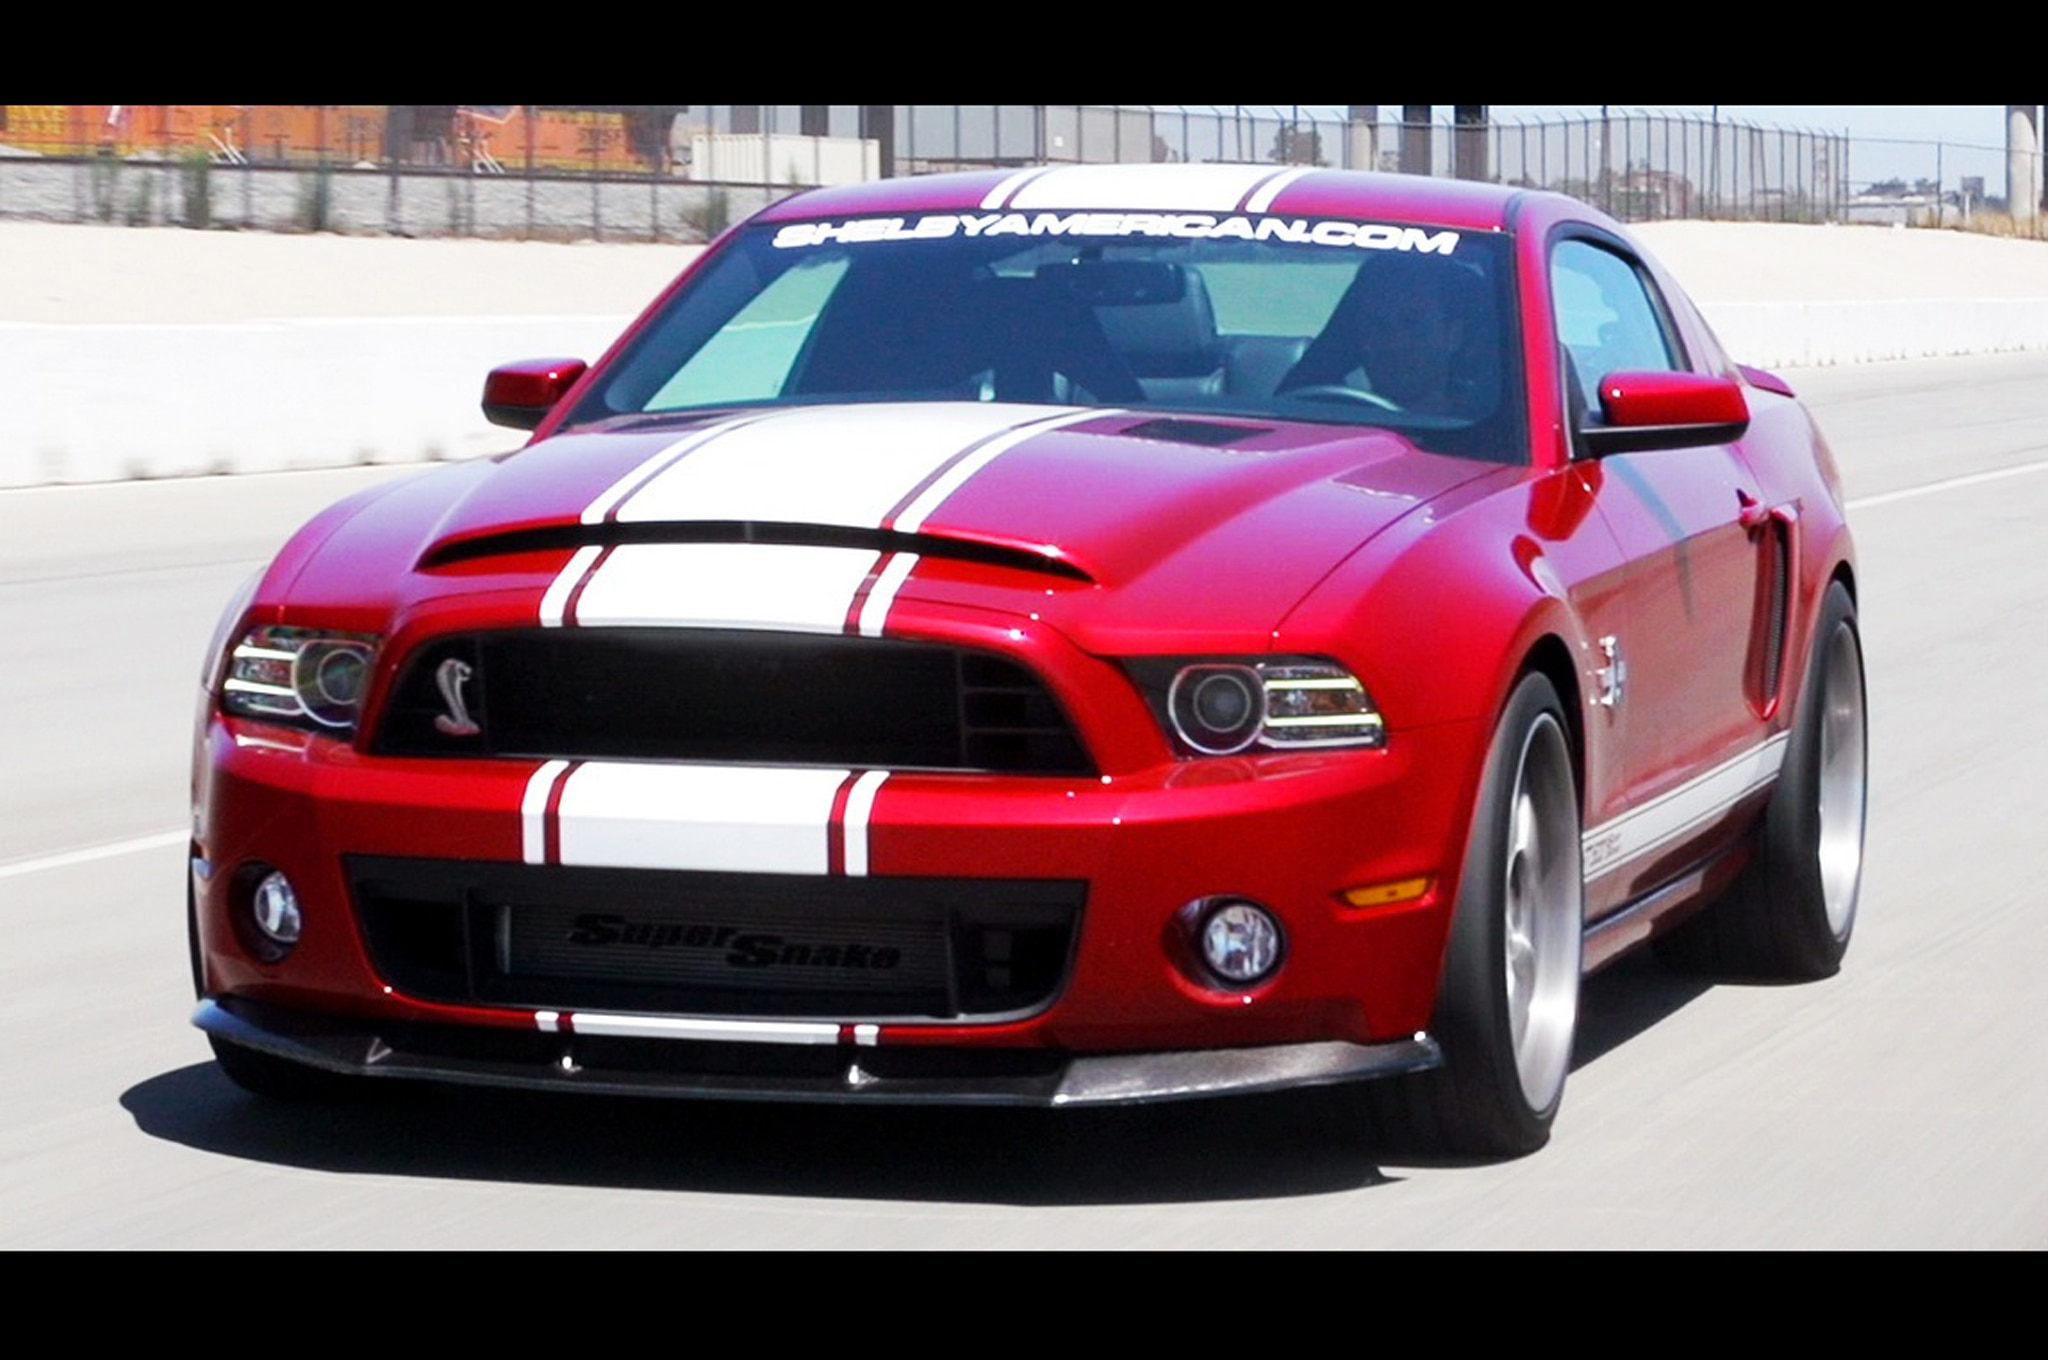 2013 shelby gt500 super snake first drive automobile magazine. Black Bedroom Furniture Sets. Home Design Ideas